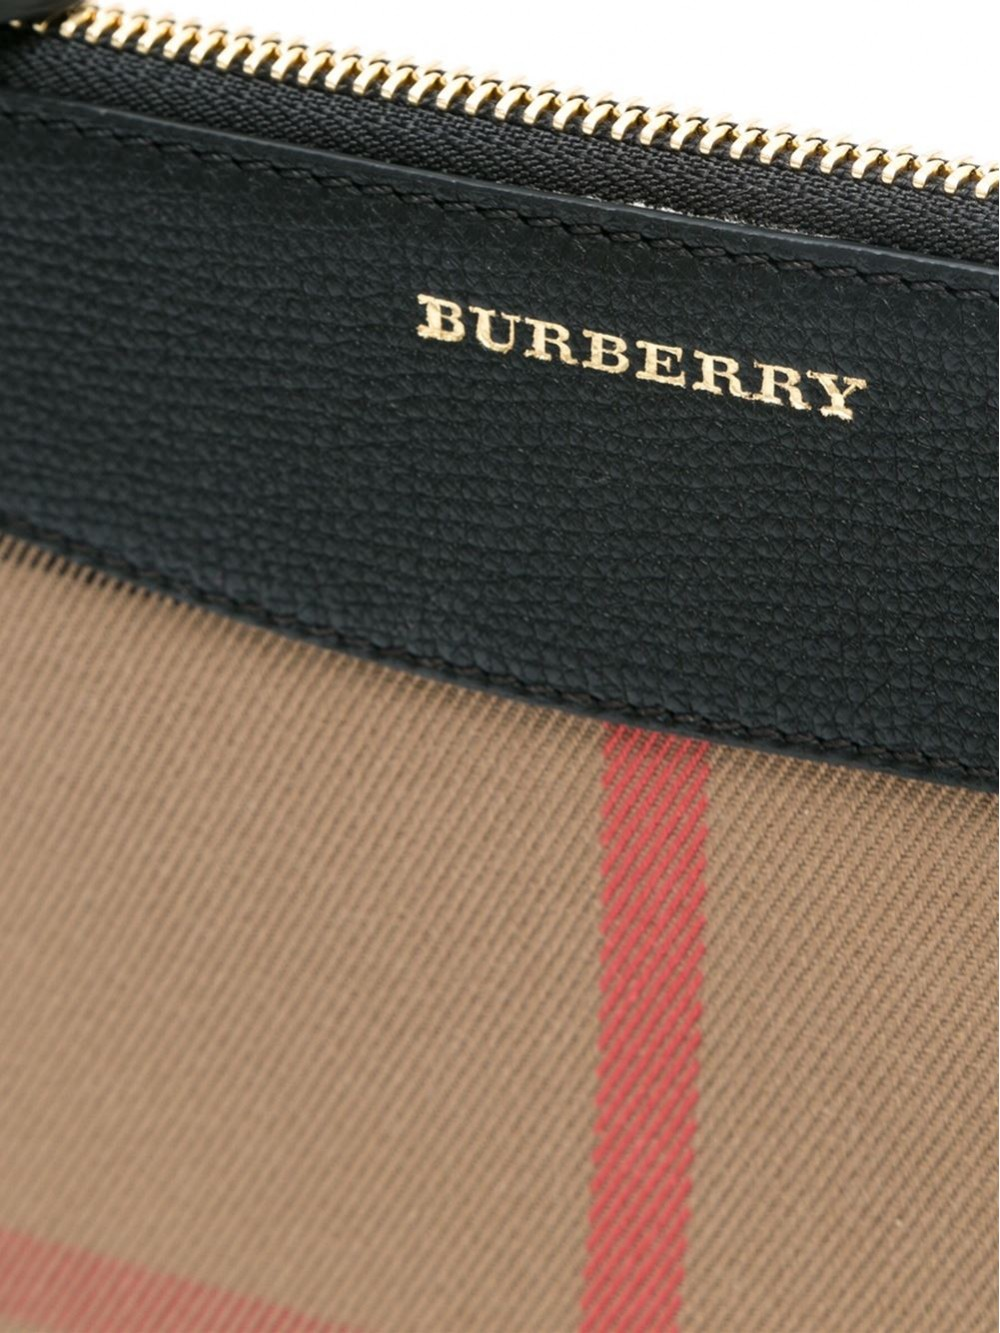 Burberry House Check Bag